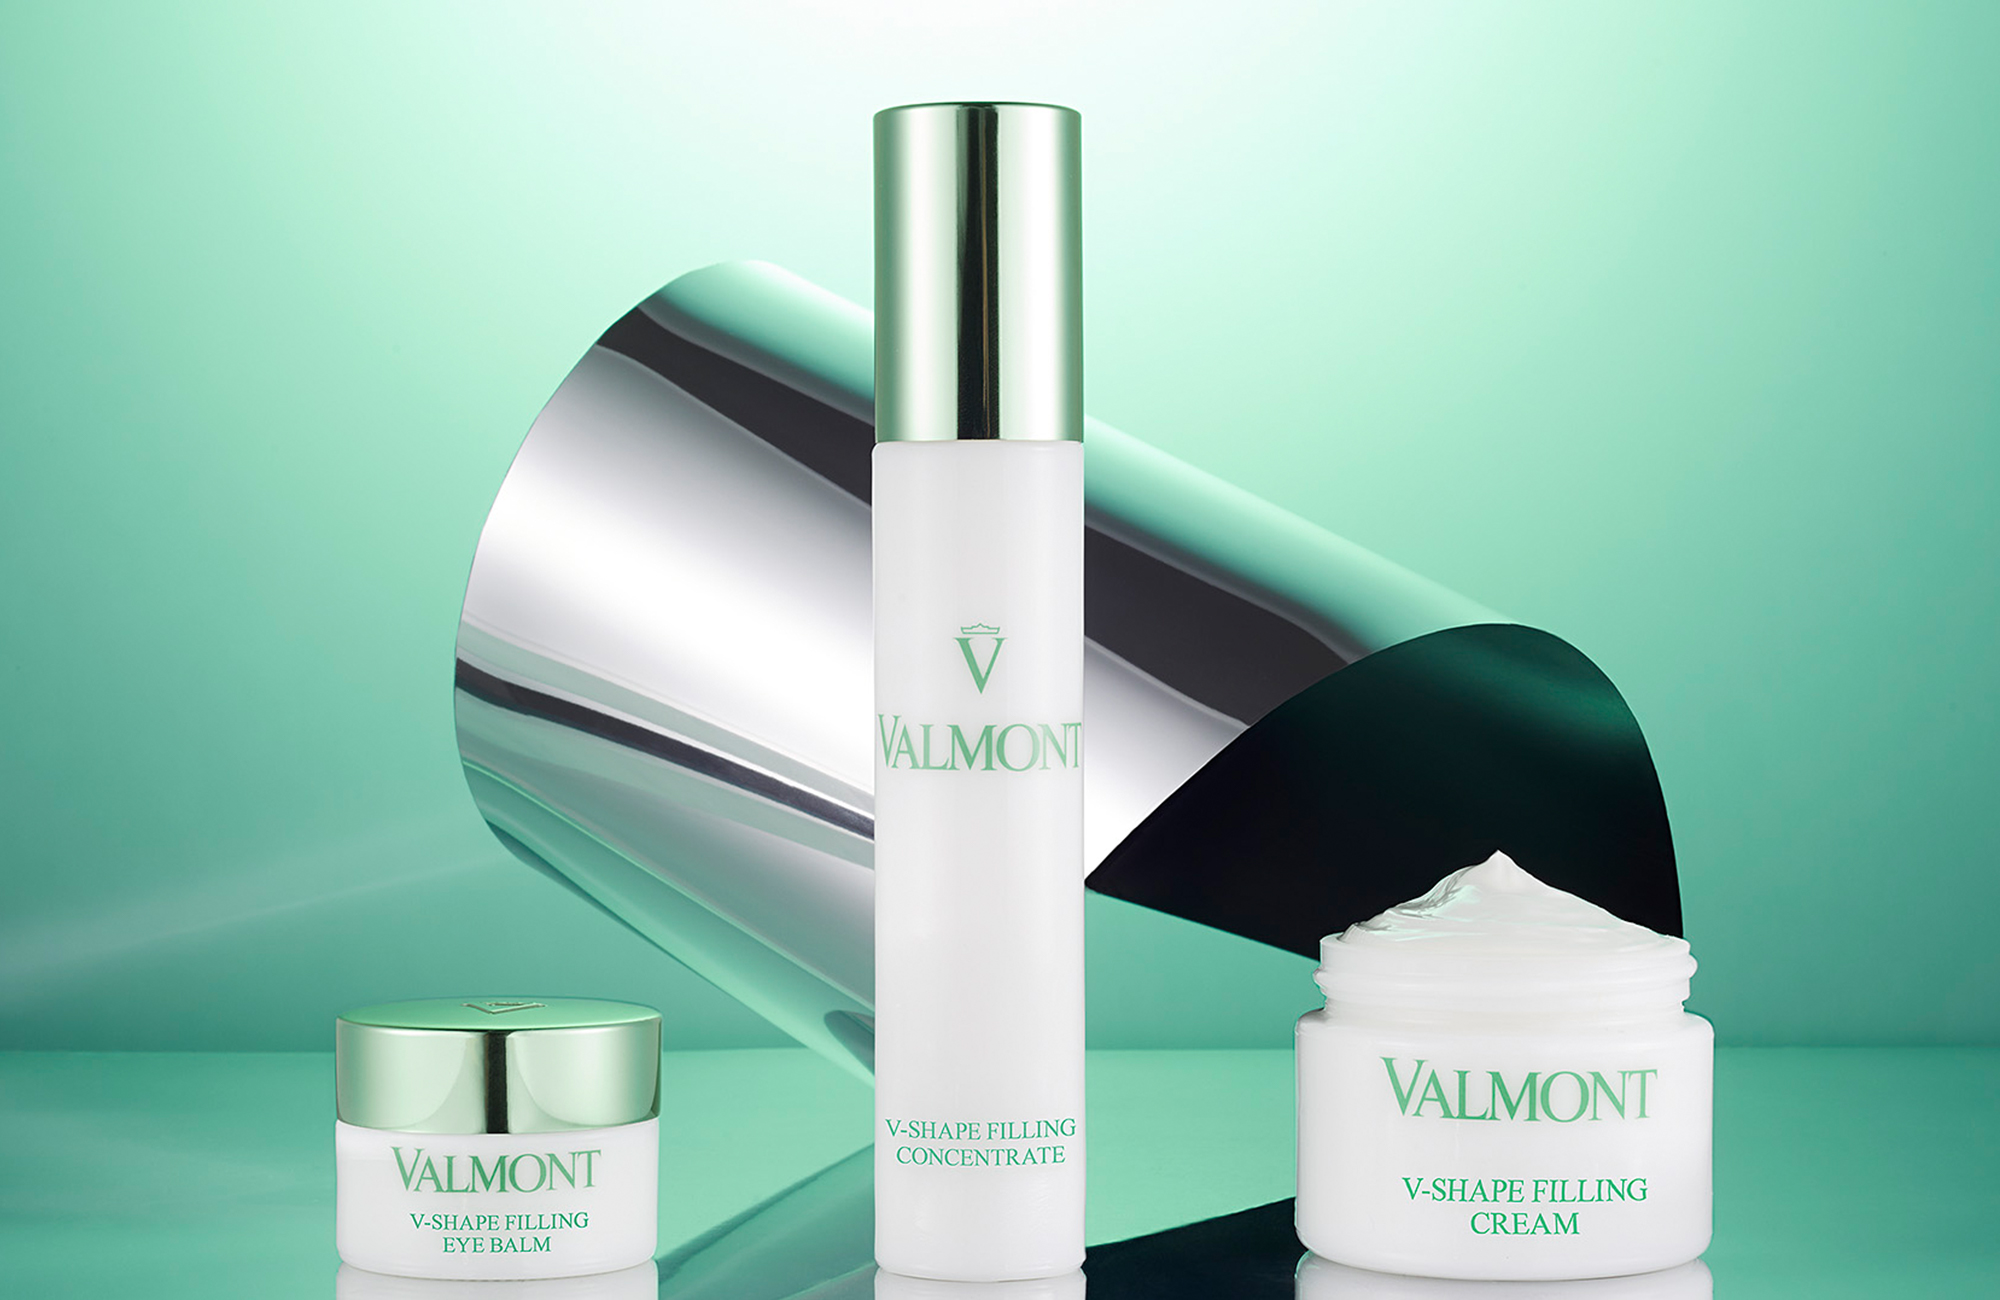 Valmont V shape products: filling cream, filling concentrate, filling eye balm